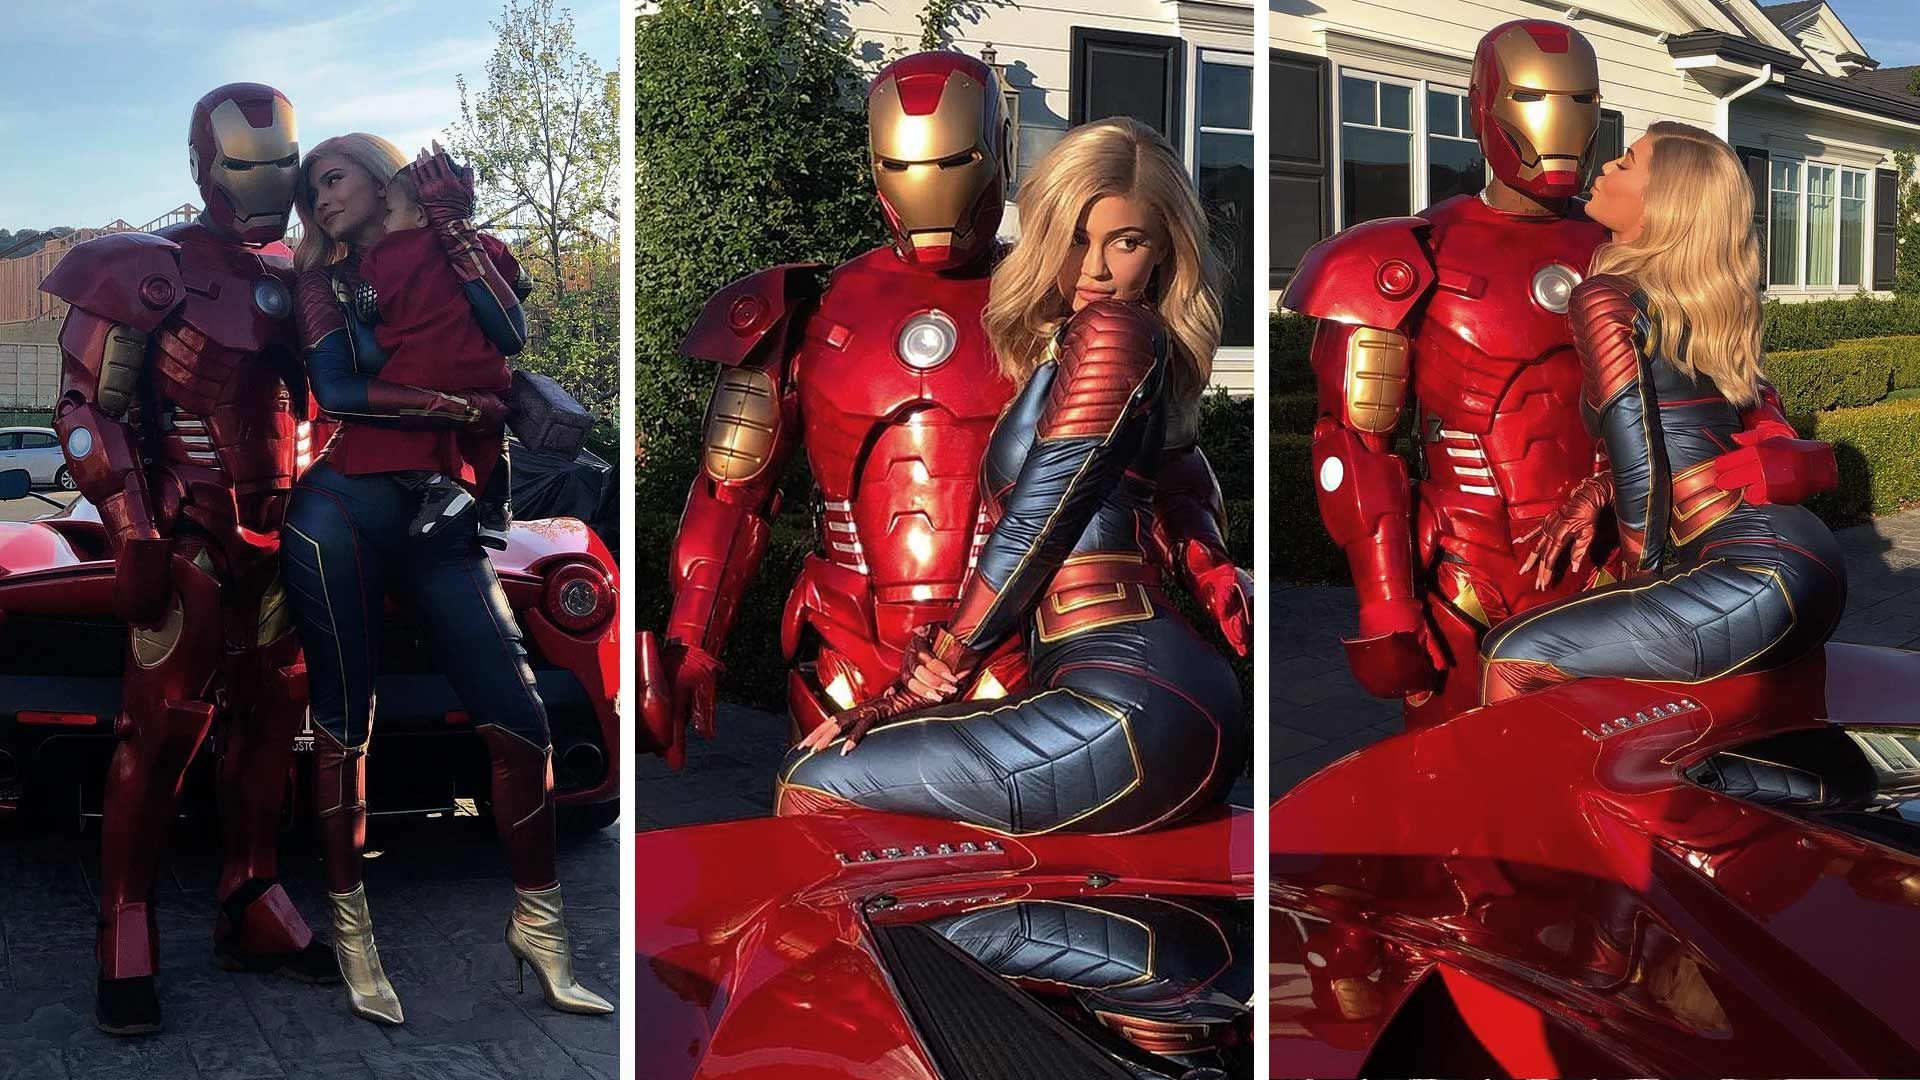 Kylie Jenner Throws Travis Scott An Avengers Themed Birthday Bash Captain marvel could be as huge as dc comics' wonder woman. kylie jenner throws travis scott an